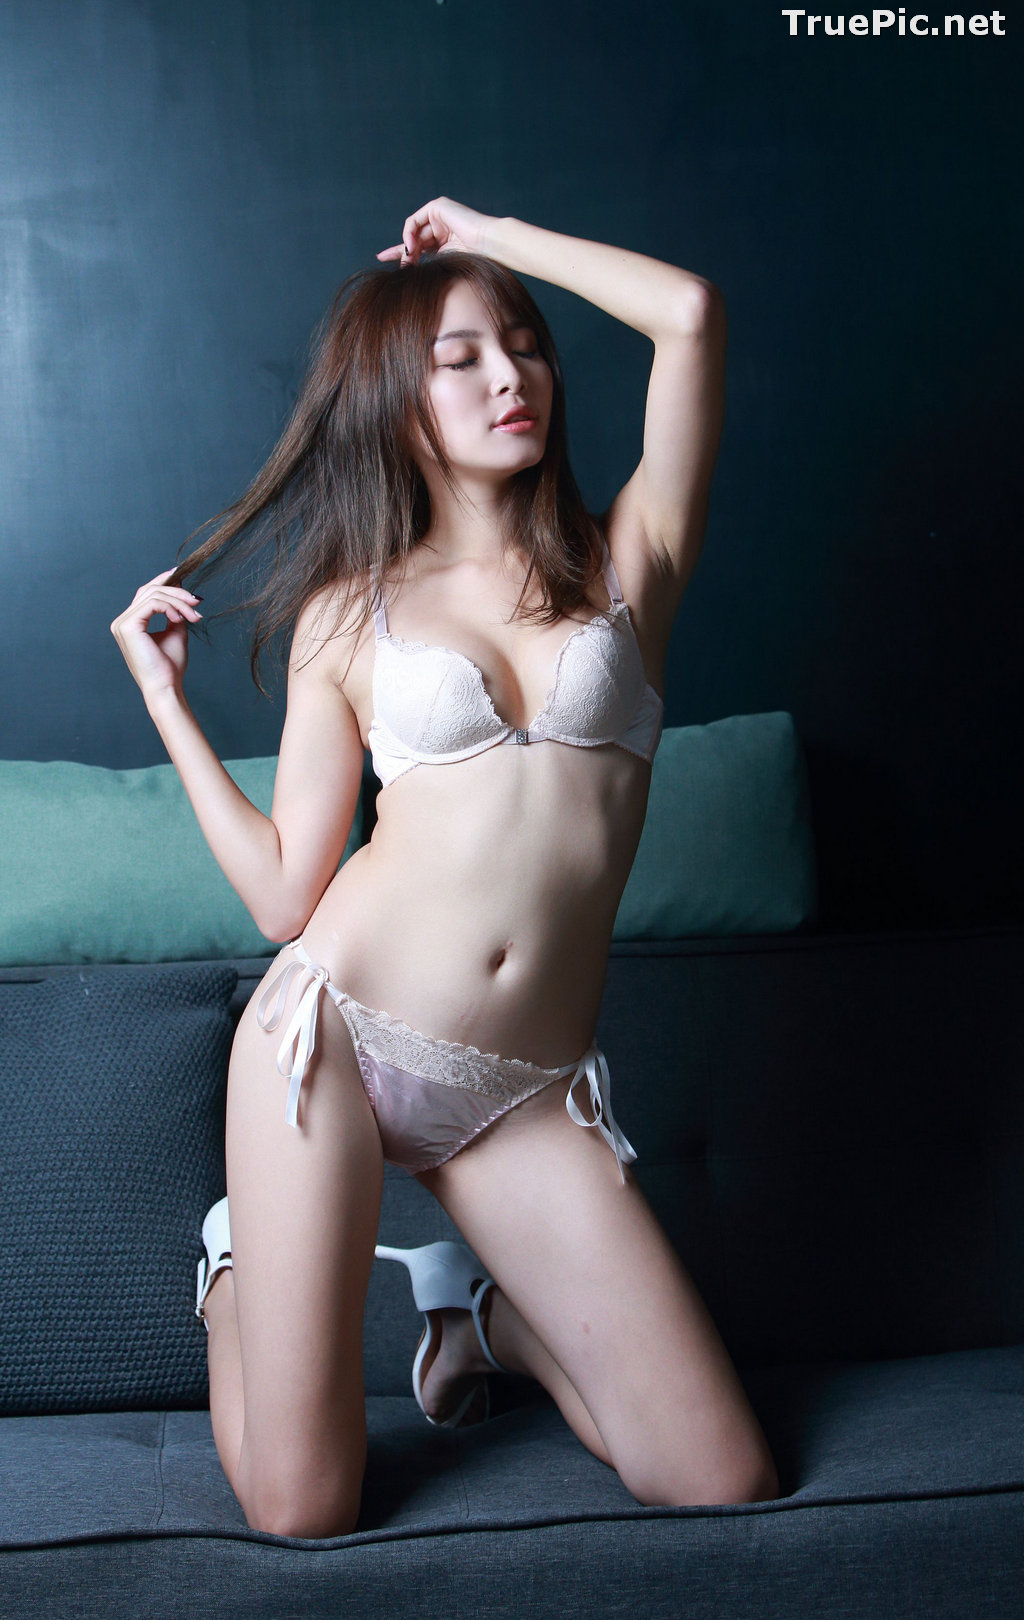 Image Taiwanese Model - Ash Ley - Sexy Girl and White Lingerie - TruePic.net - Picture-4